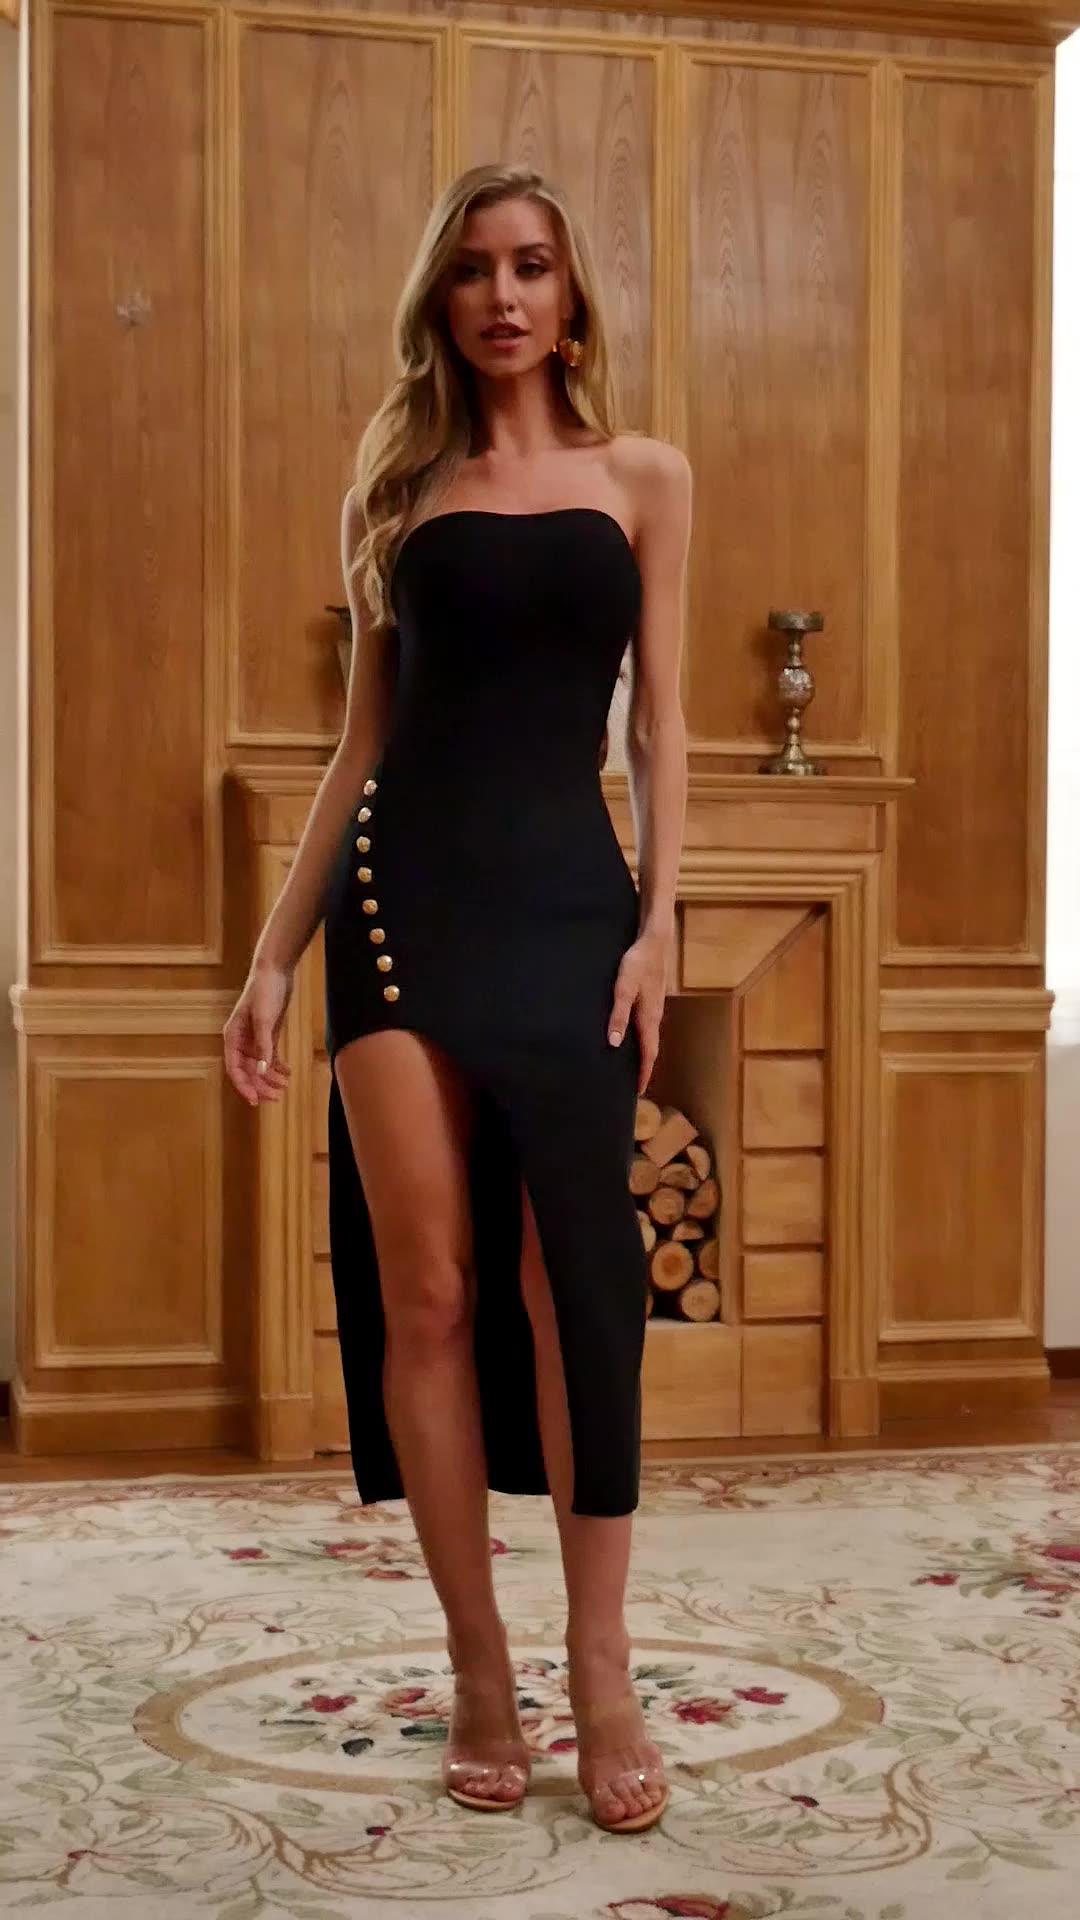 2020 Strapless Bandage Bodycon Dress Button Decoration Formal Evening Wear Long Party Gowns for Women